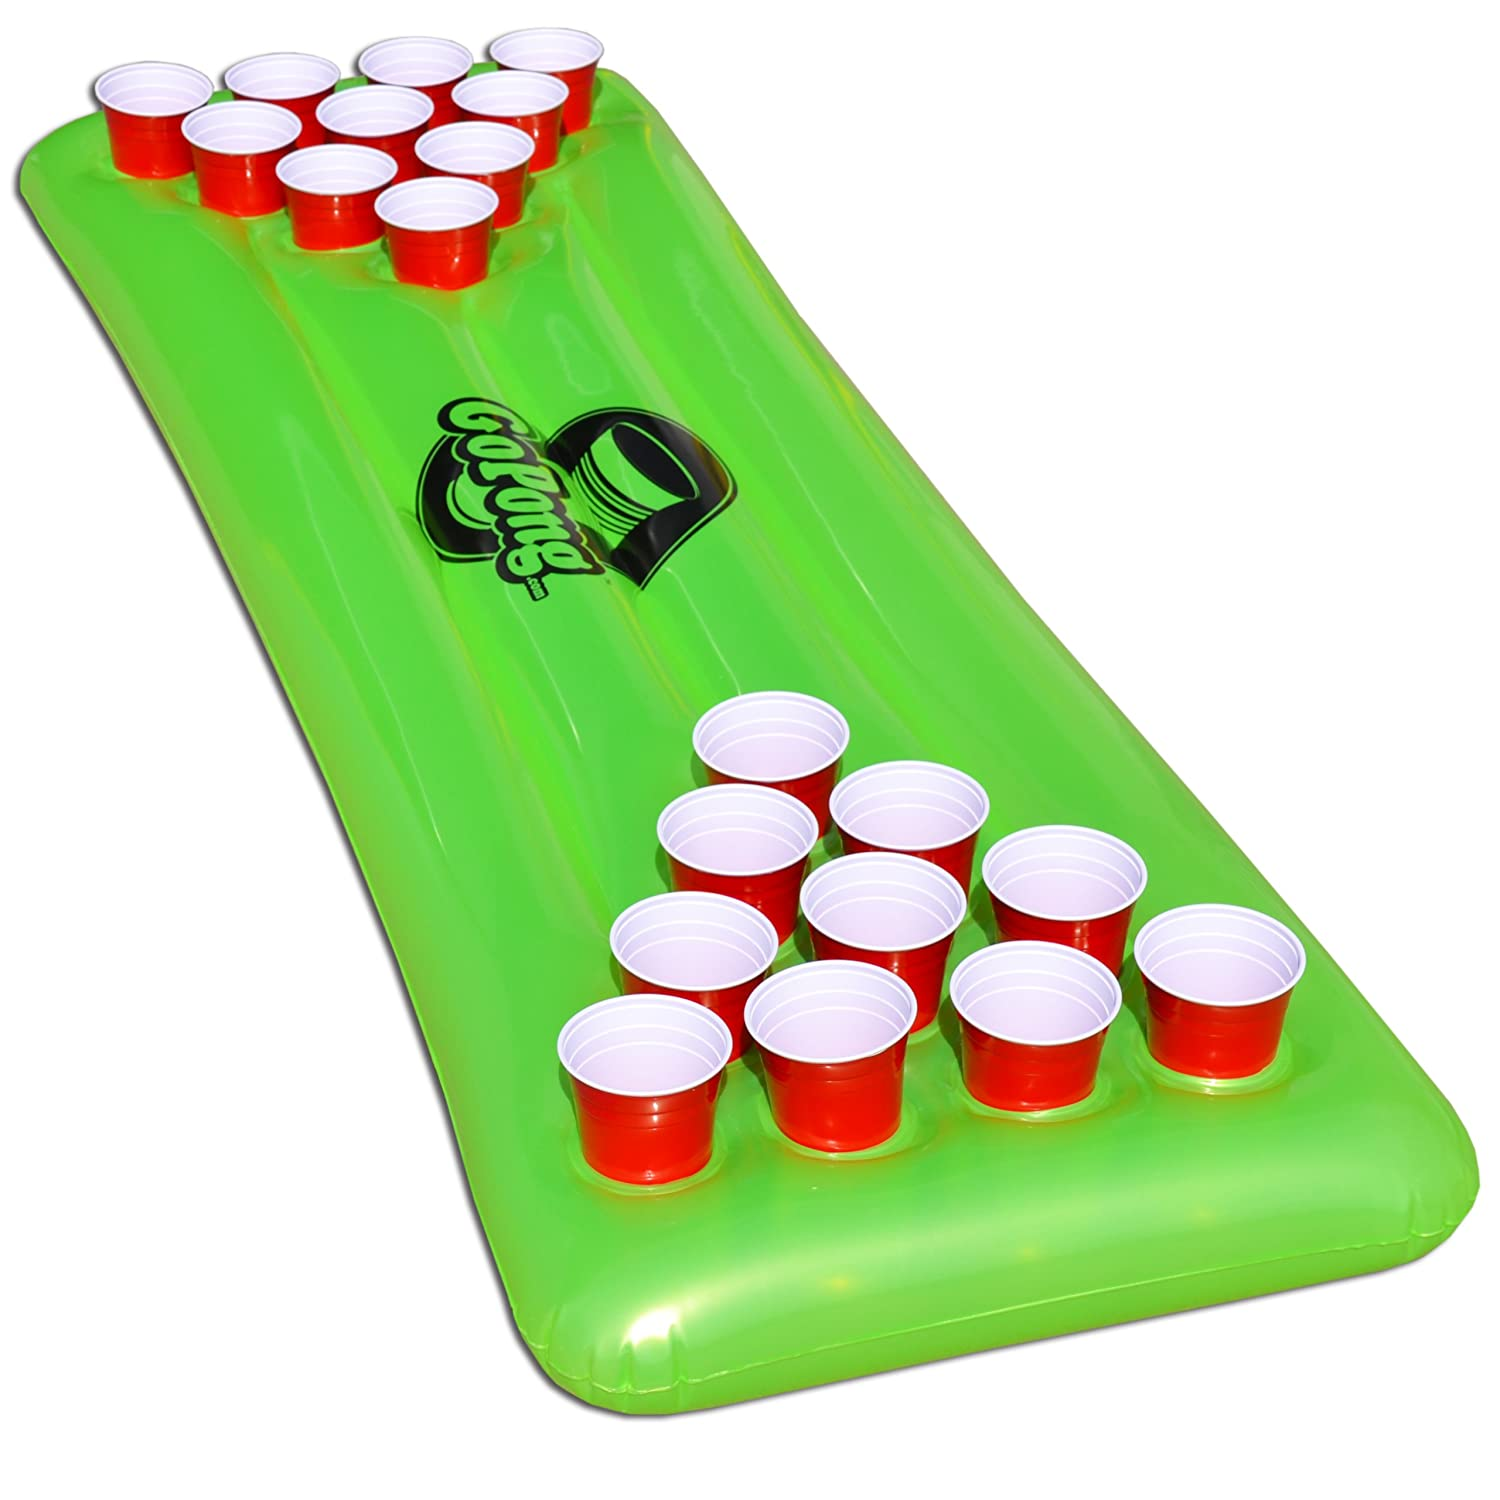 amazon com gopong pool pong table inflatable floating beer pong rh amazon com inflatable beer pong table canadian tire inflatable beer pong table australia